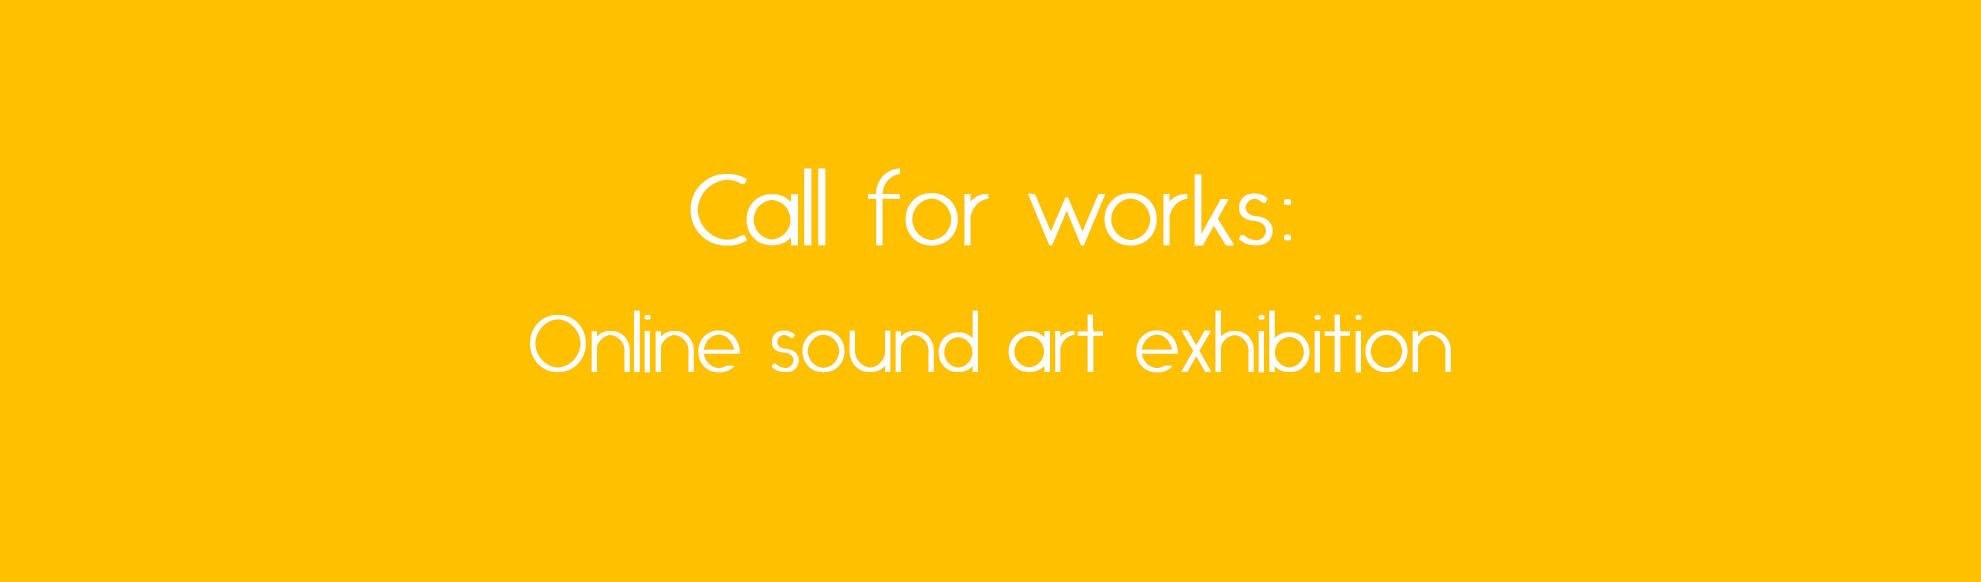 "A yellow background with white text that reads ""Call for works: online sound art exhibition"""